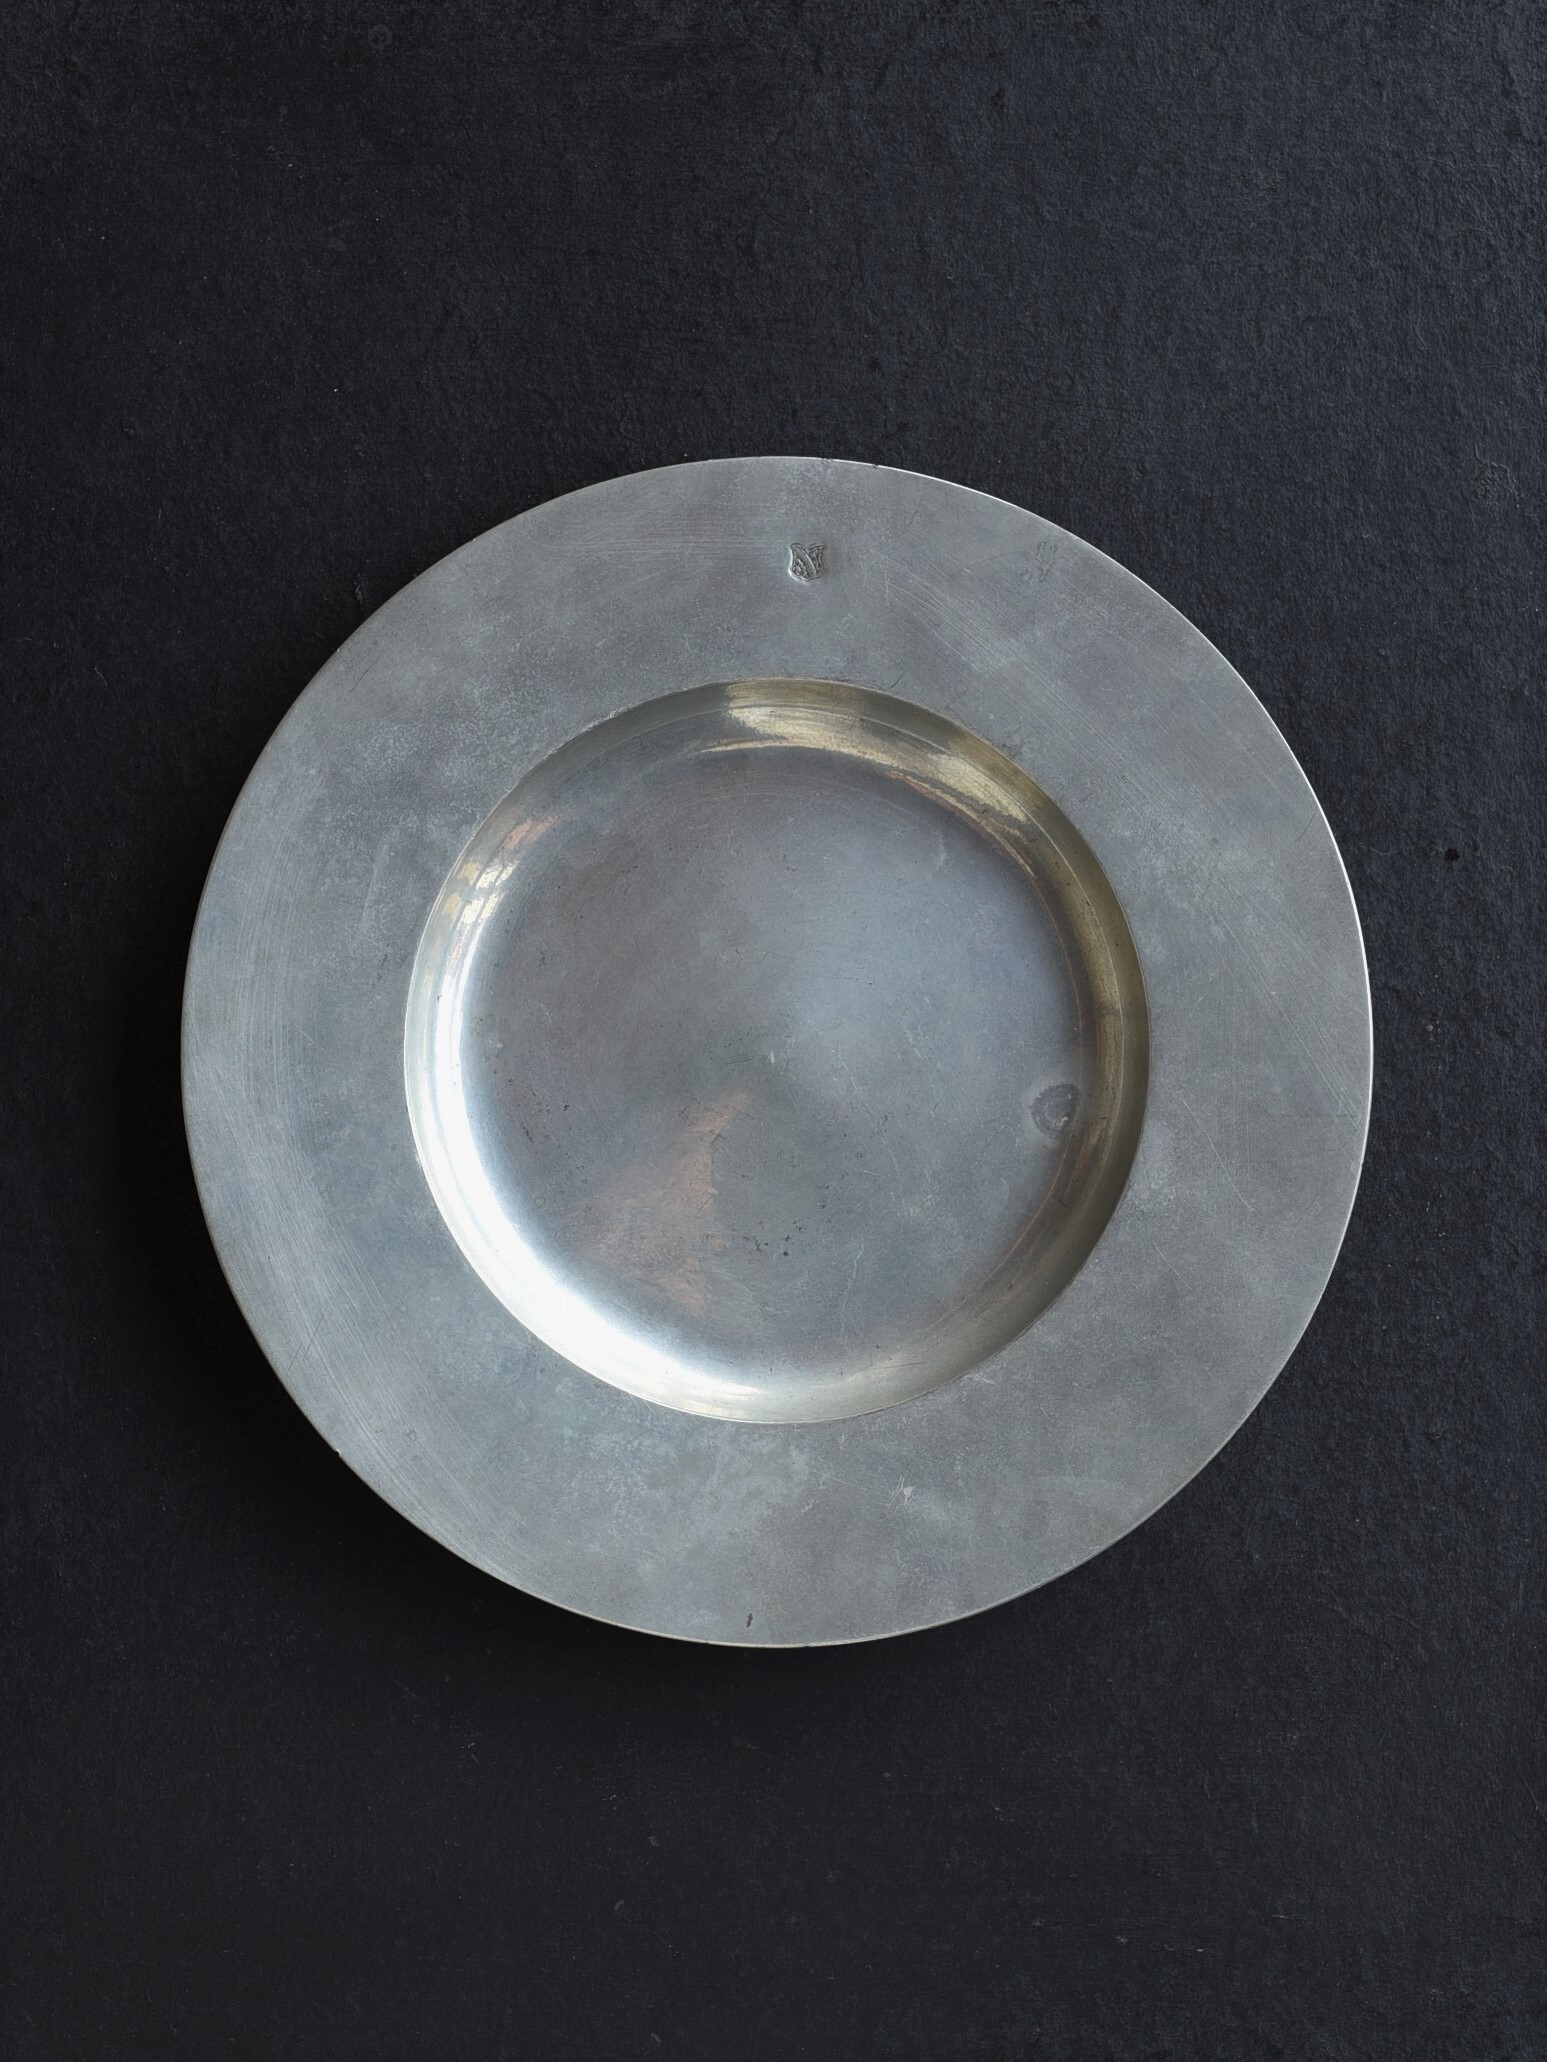 antique | ピューター皿-pewter plate